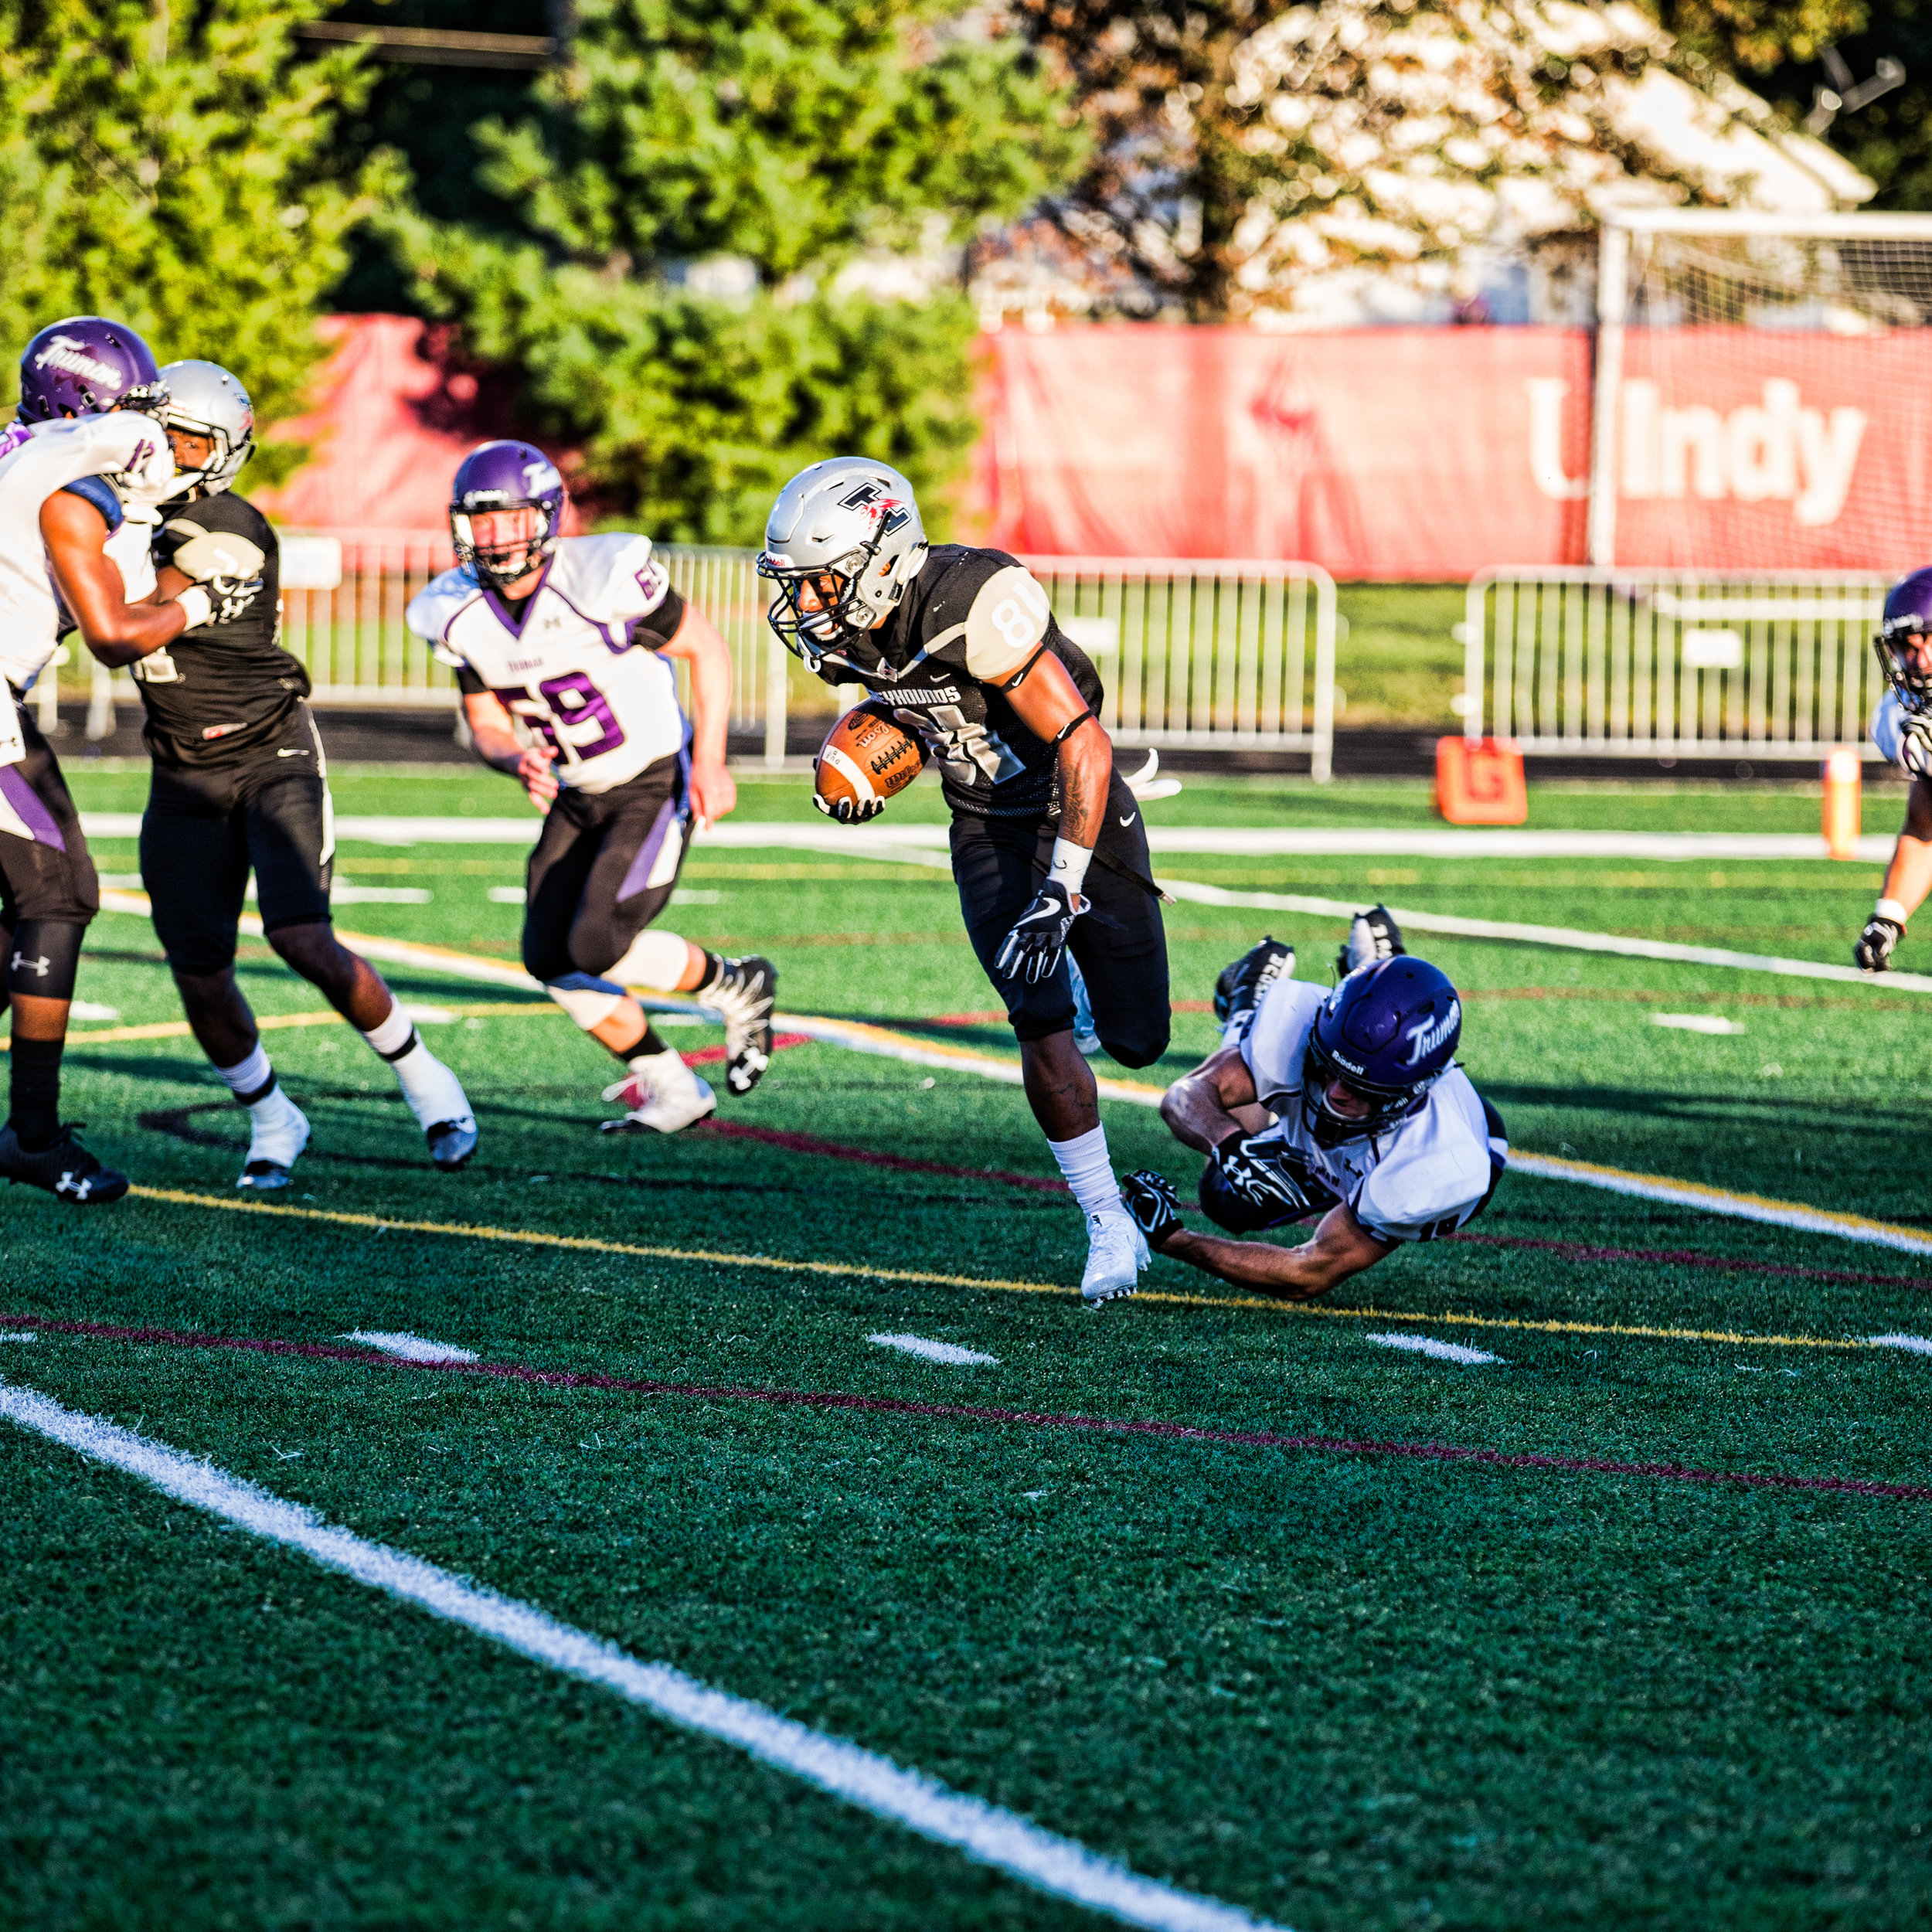 UIndy Football-3.jpg